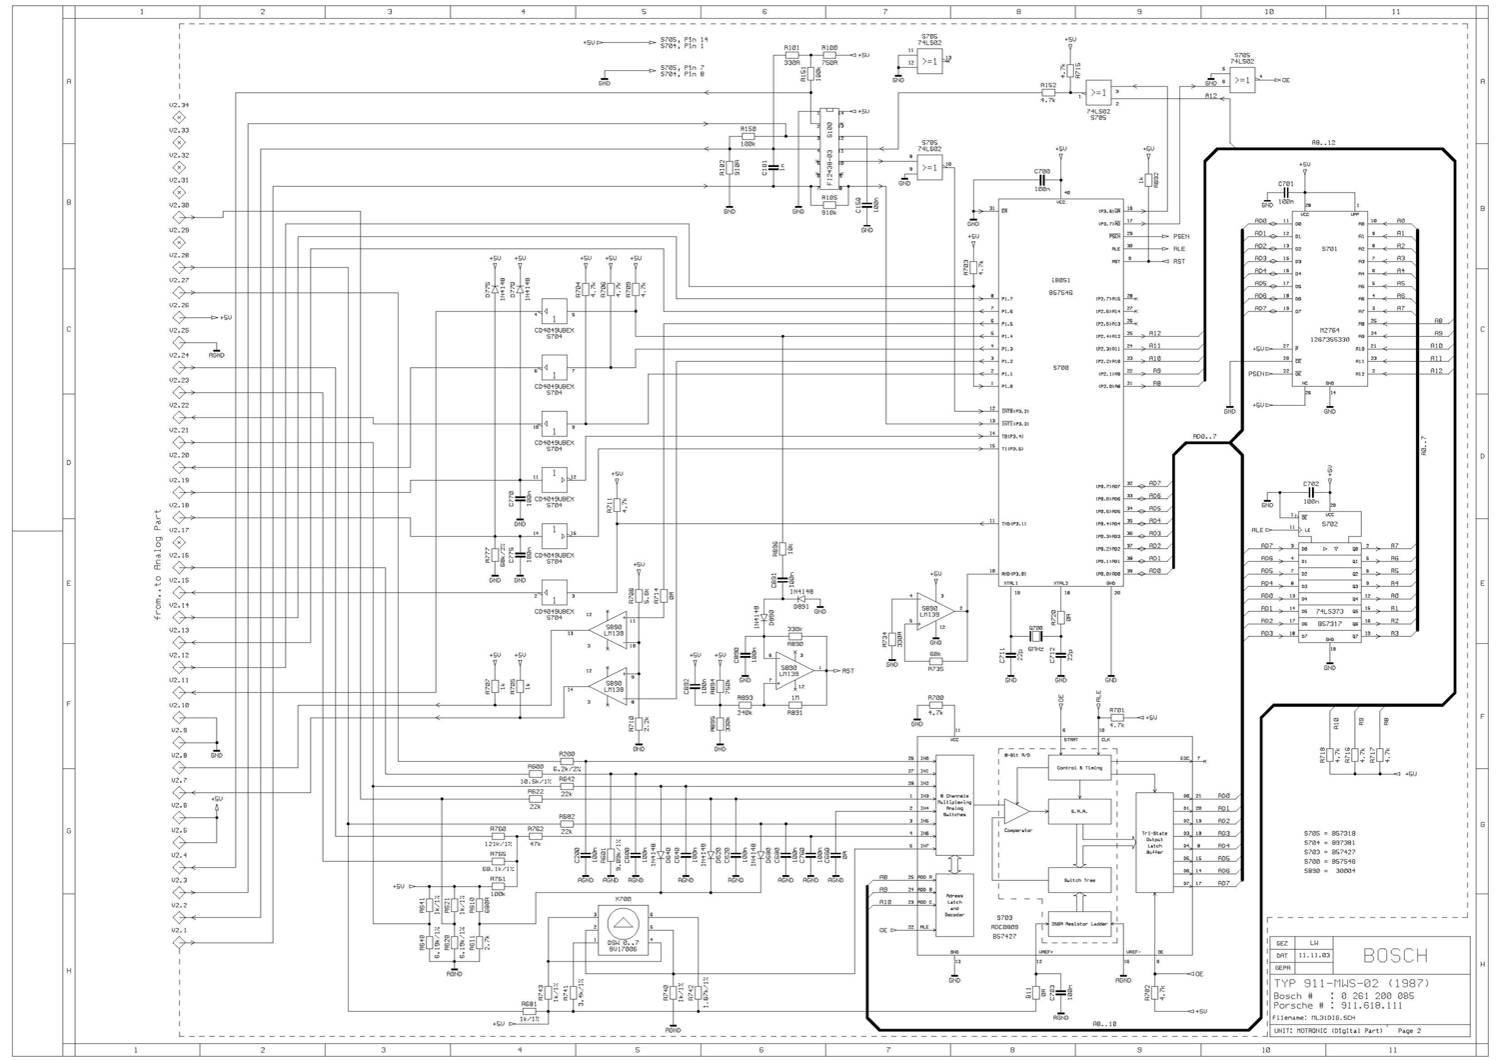 dme na 2 dme wiring diagram normally aspirated 944 porsche 944 wiring diagram pdf at aneh.co